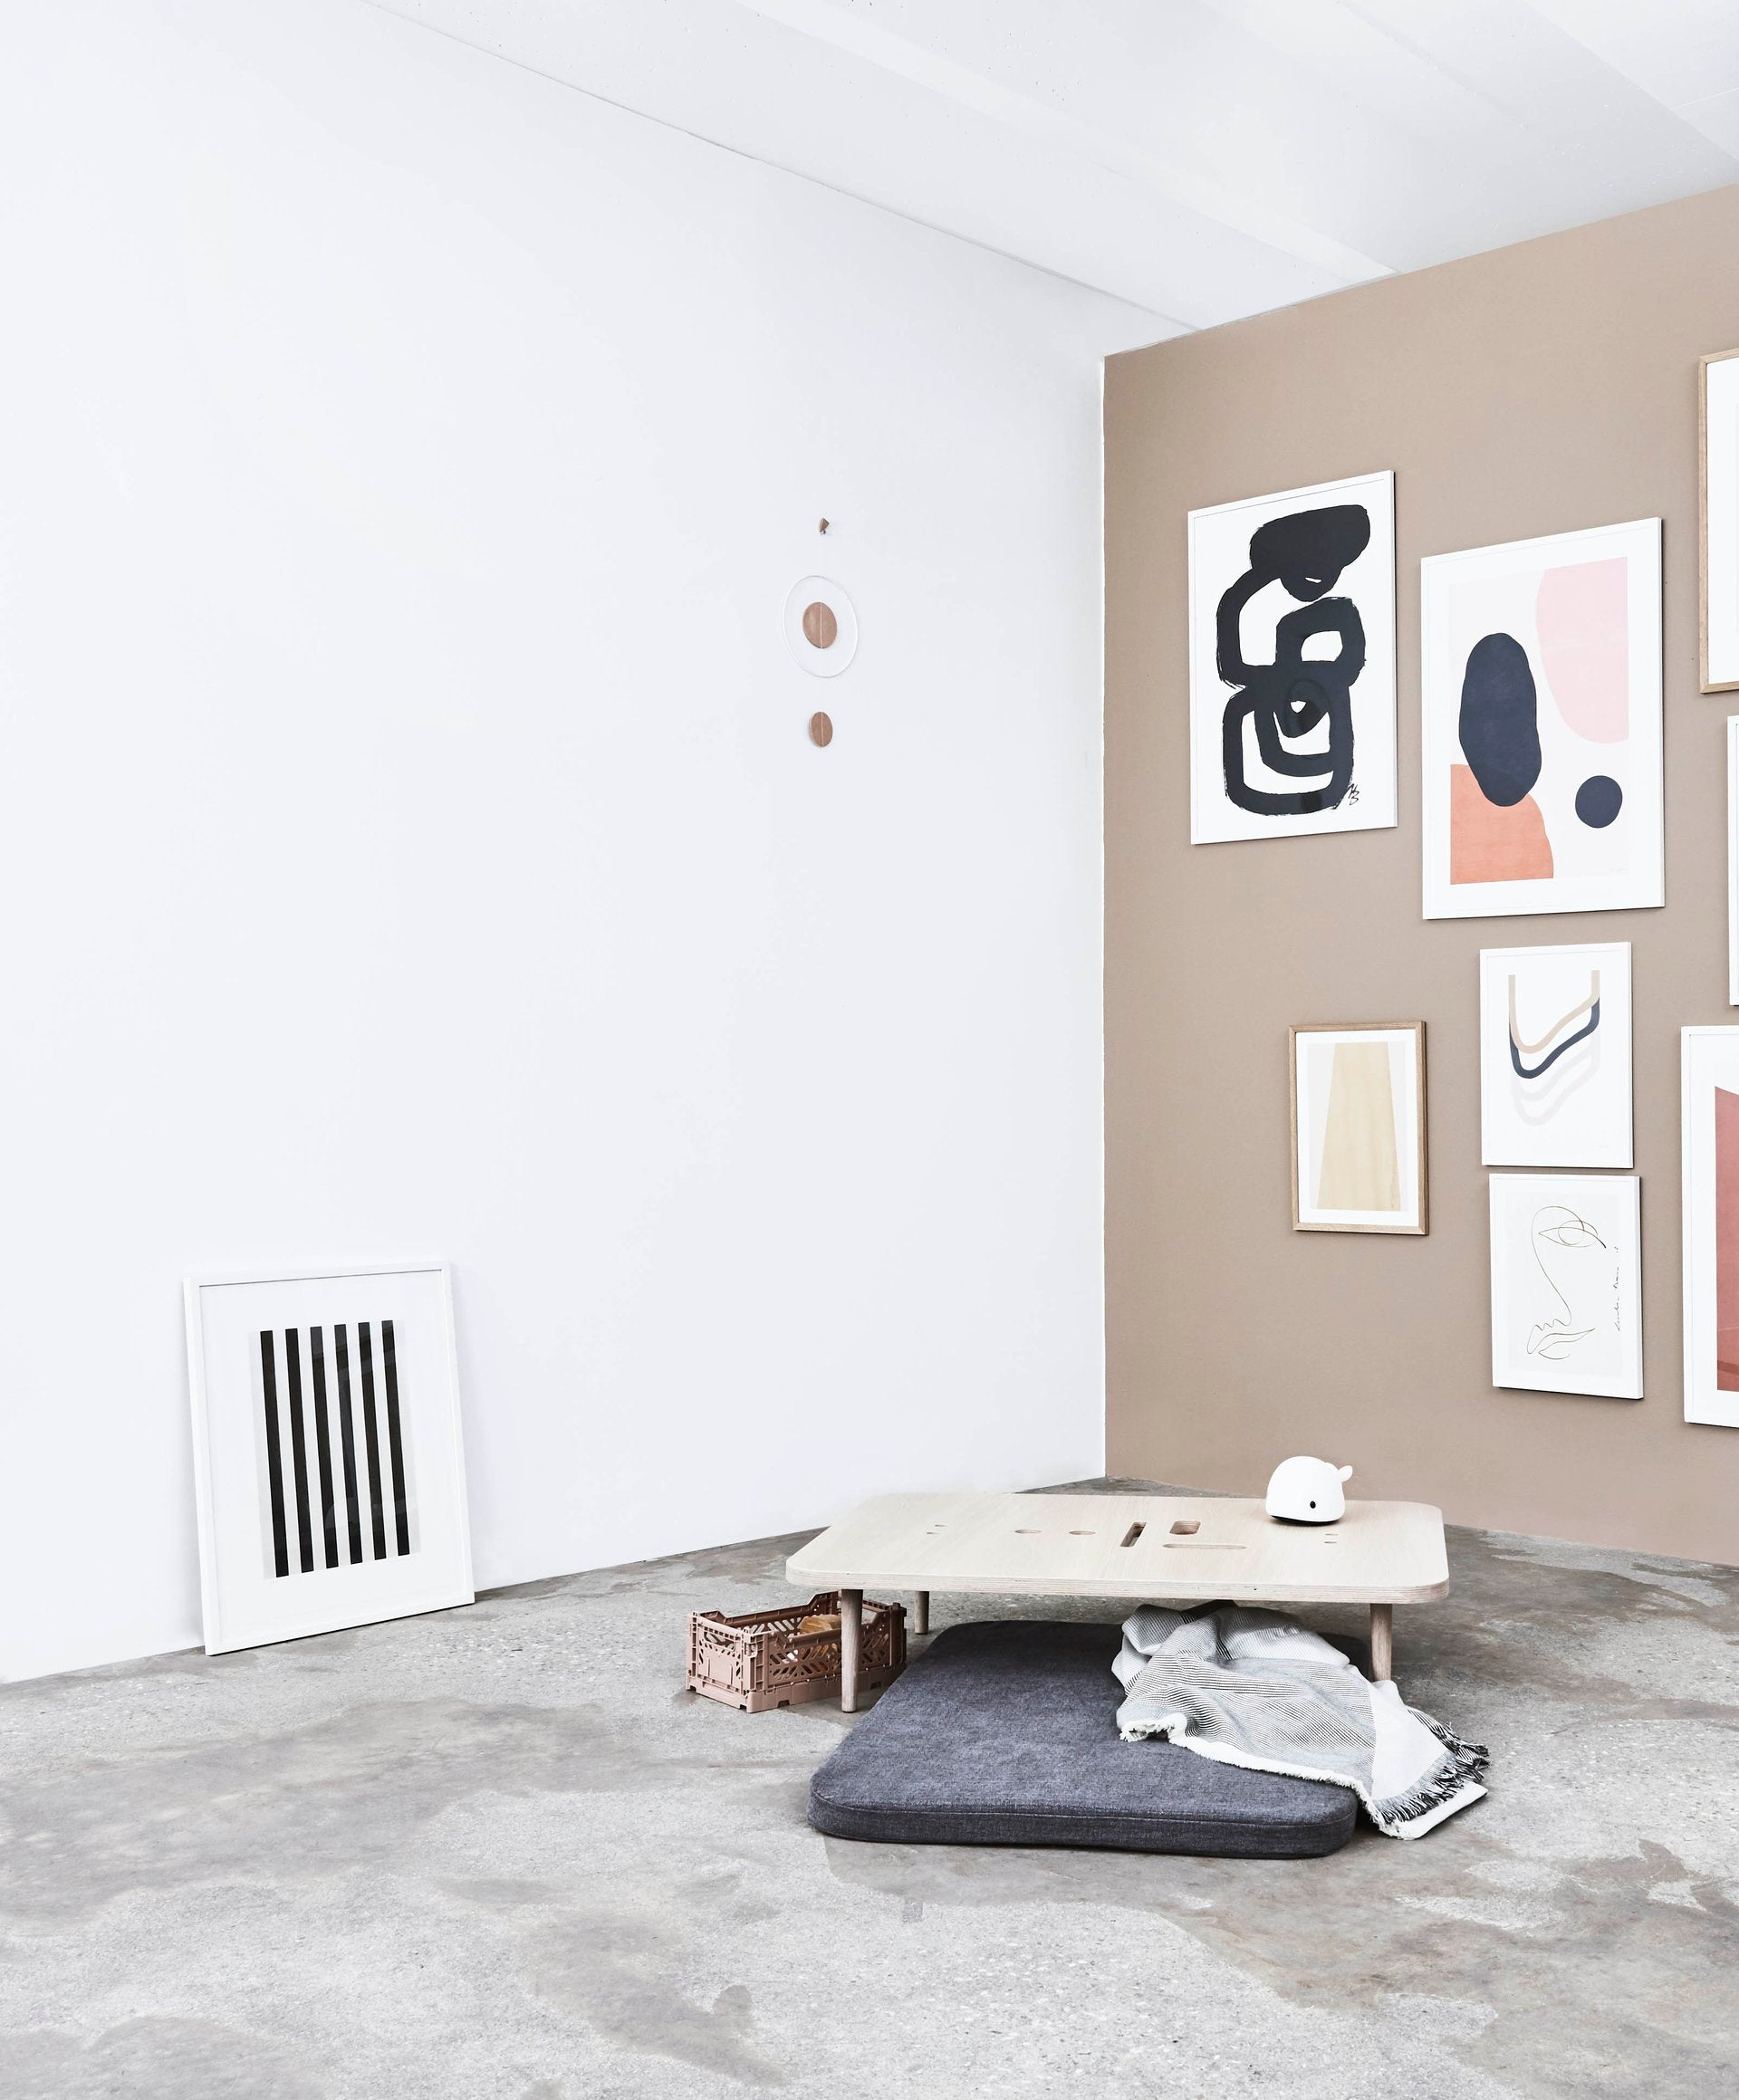 DANISH BABY AND CHILDREN INTERIOR DESIGN COMPANY BASED IN COPENHAGEN